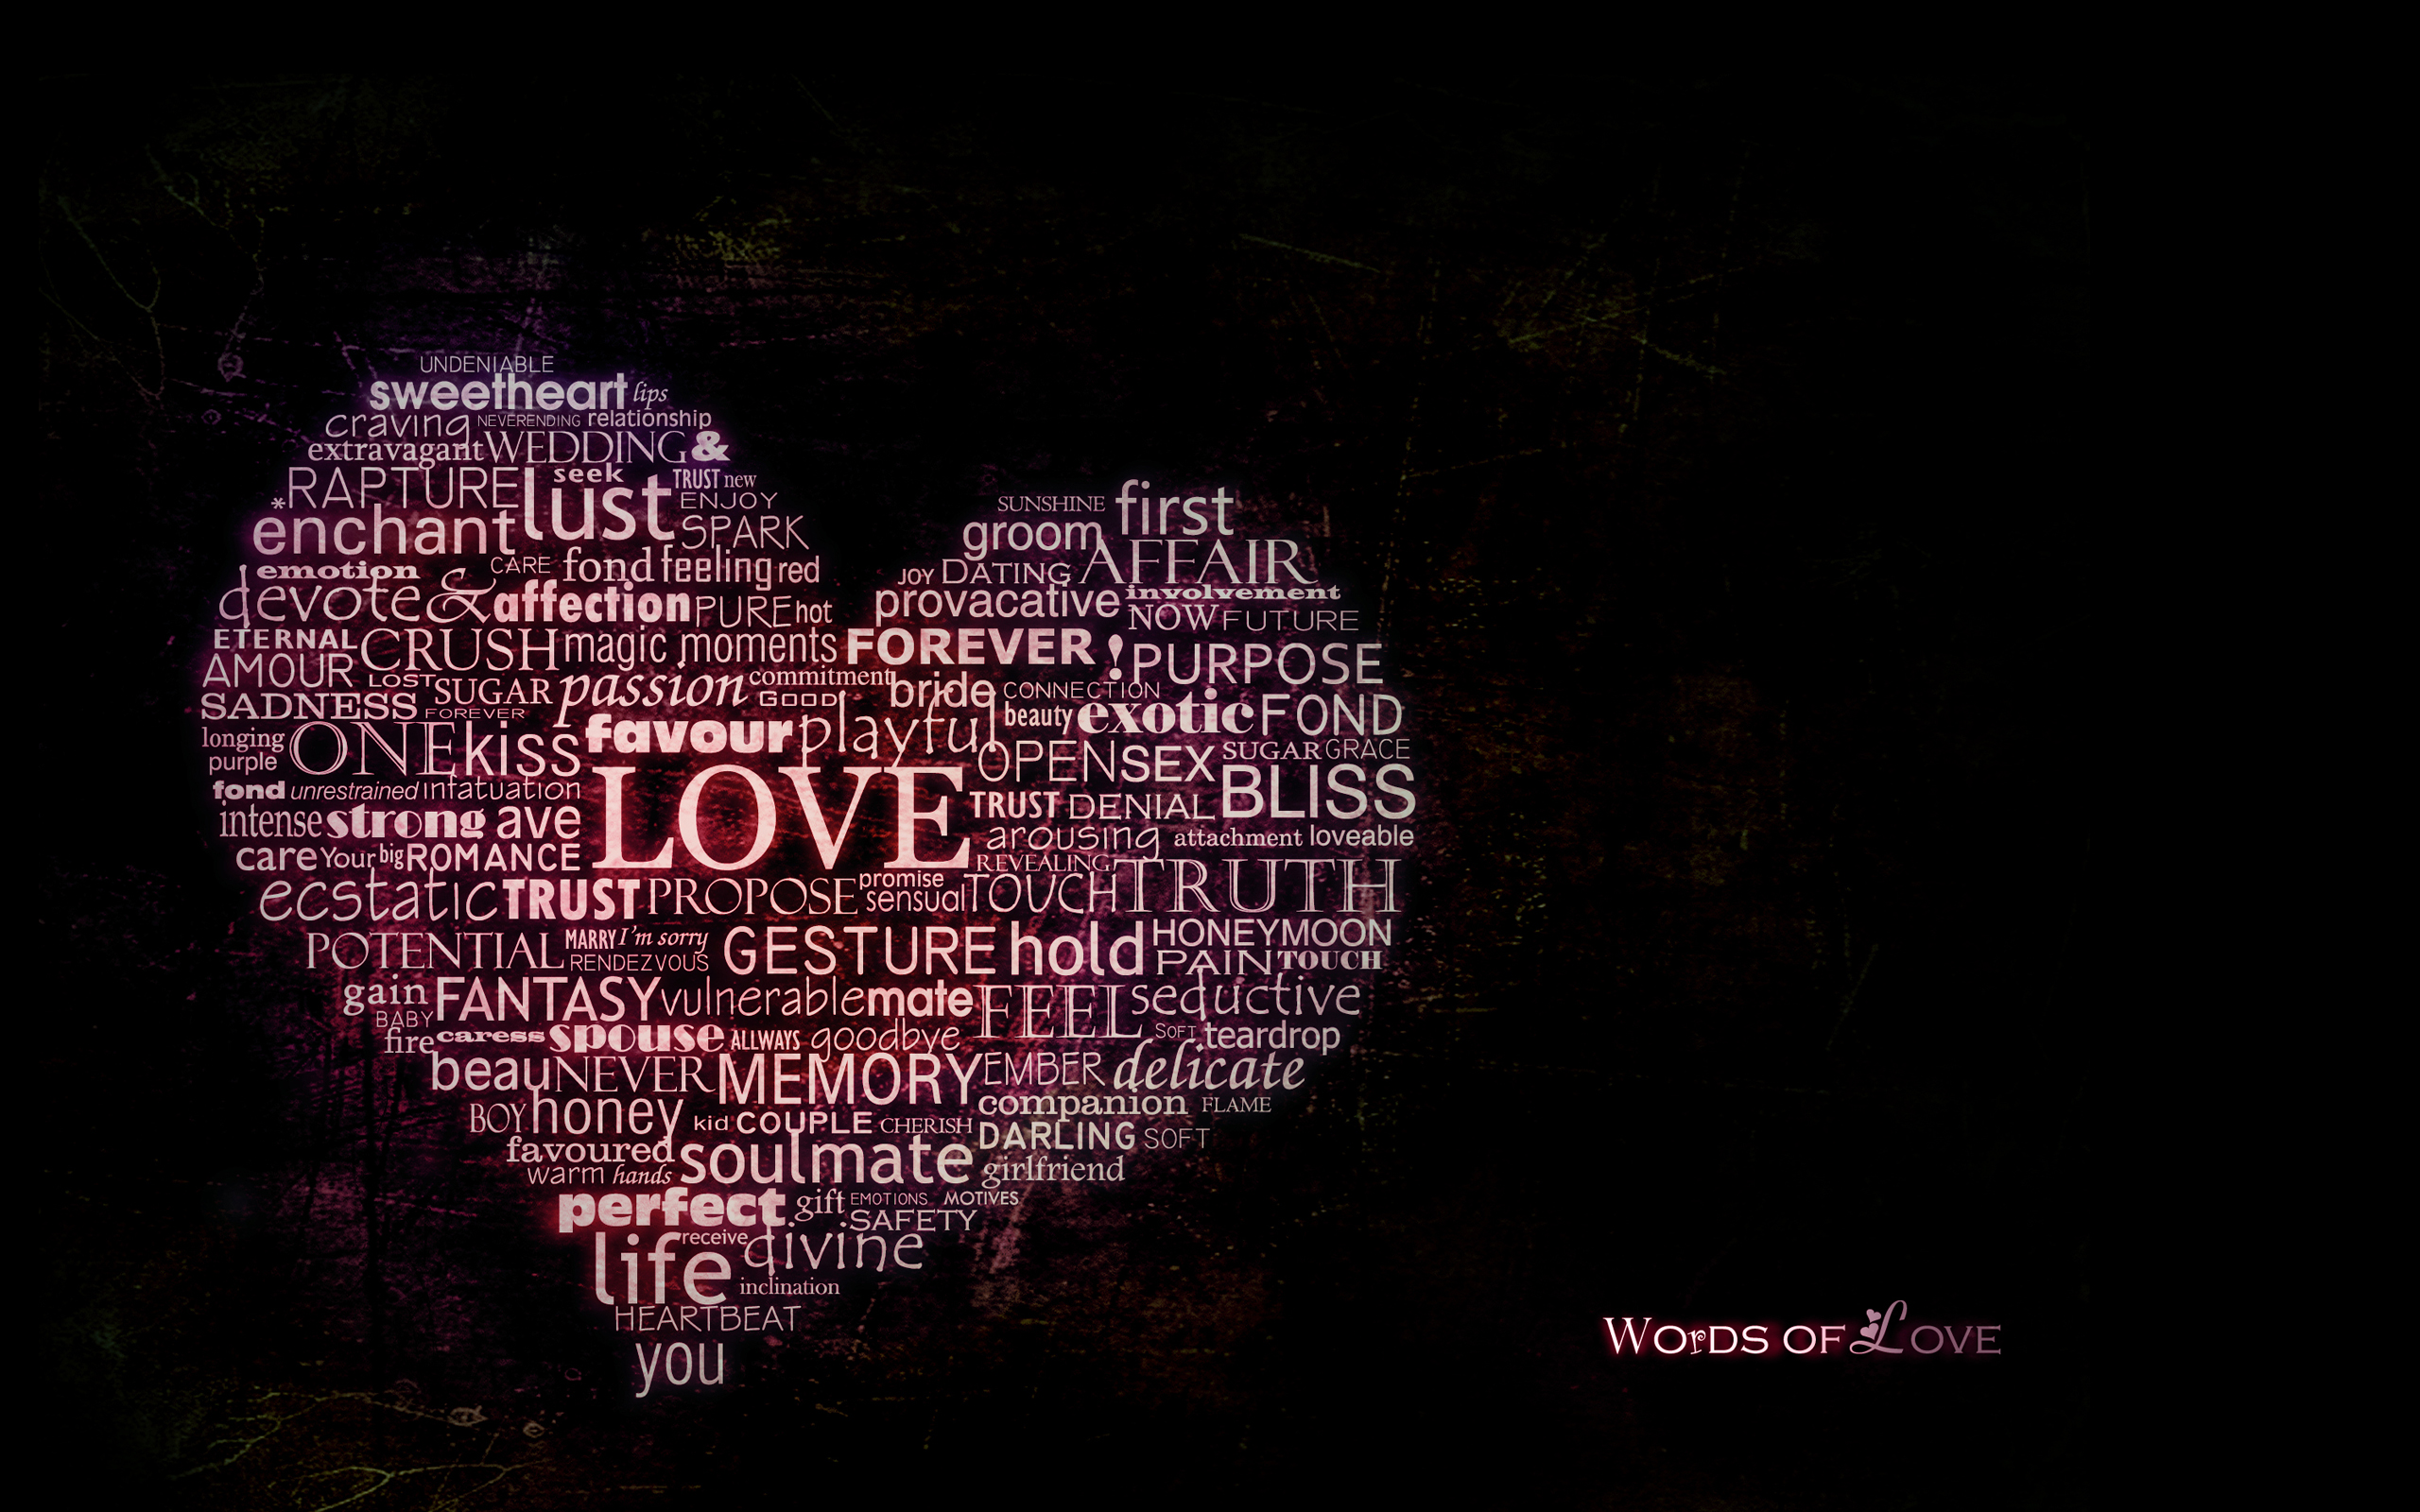 Words of Love Wallpapers HD Wallpapers 2560x1600